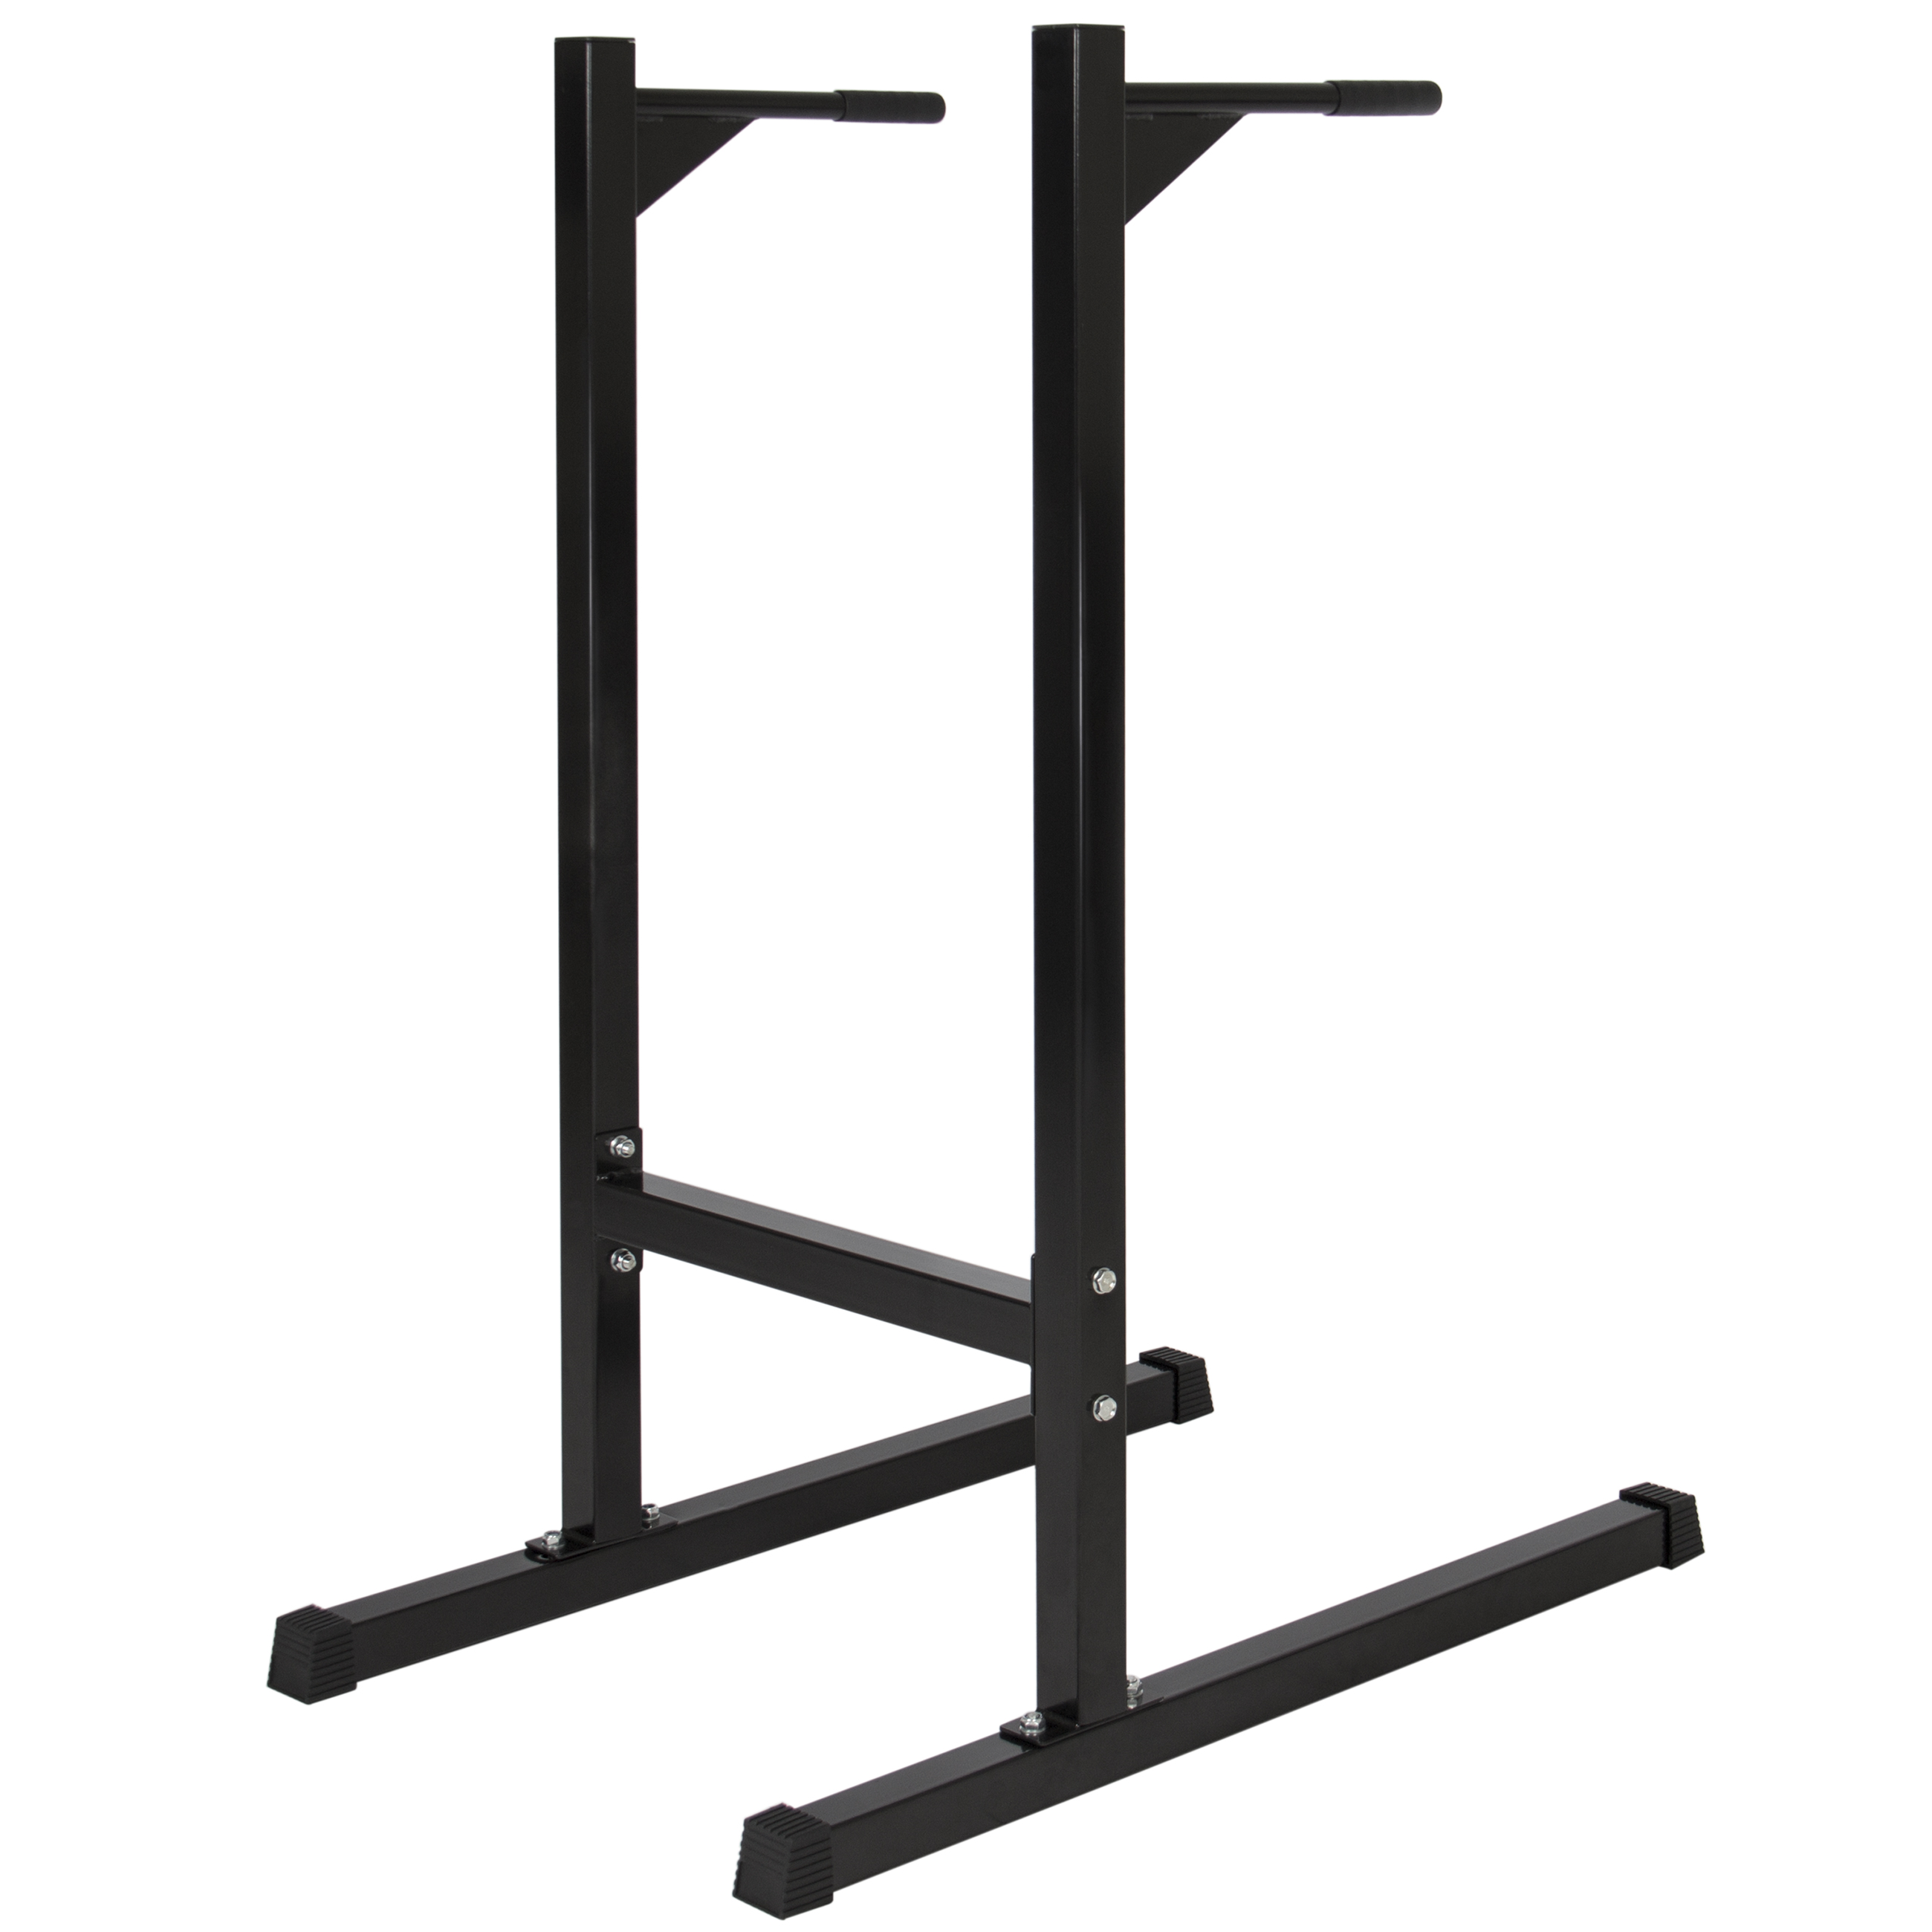 Best Choice Products Home Fitness Exercise Workout Station Stand For Push Up Bar Press Handles Grey Dips And W 500lb Weight Capacity Black